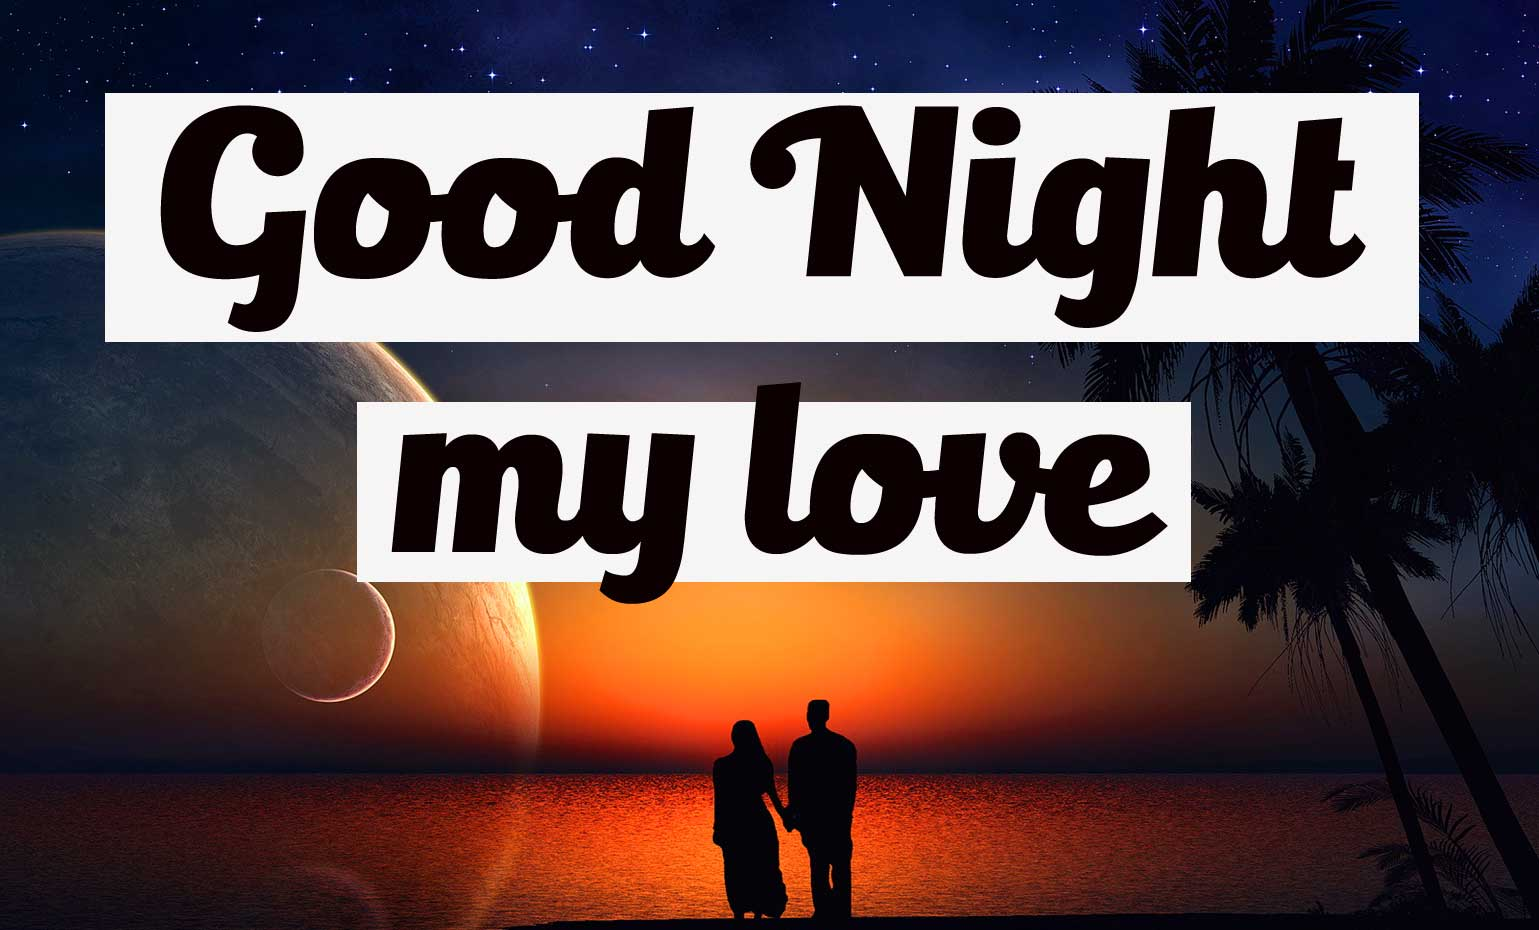 Most Beautiful Good Night Photo